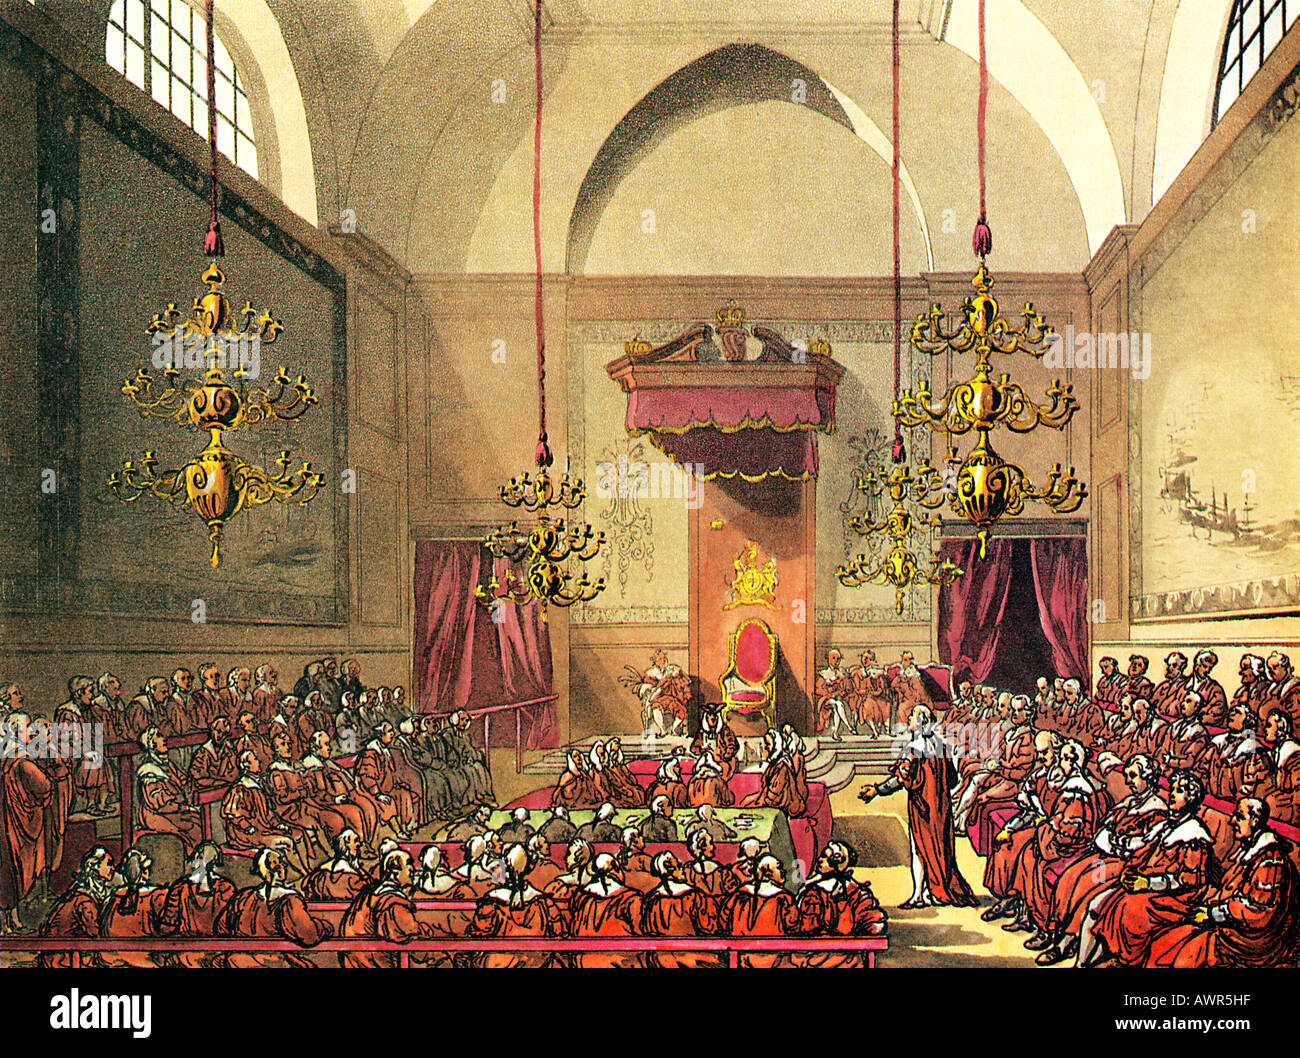 House of Lords 1805 from the Microcosm of London illustrated by Rowlandson and Pugin - Stock Image